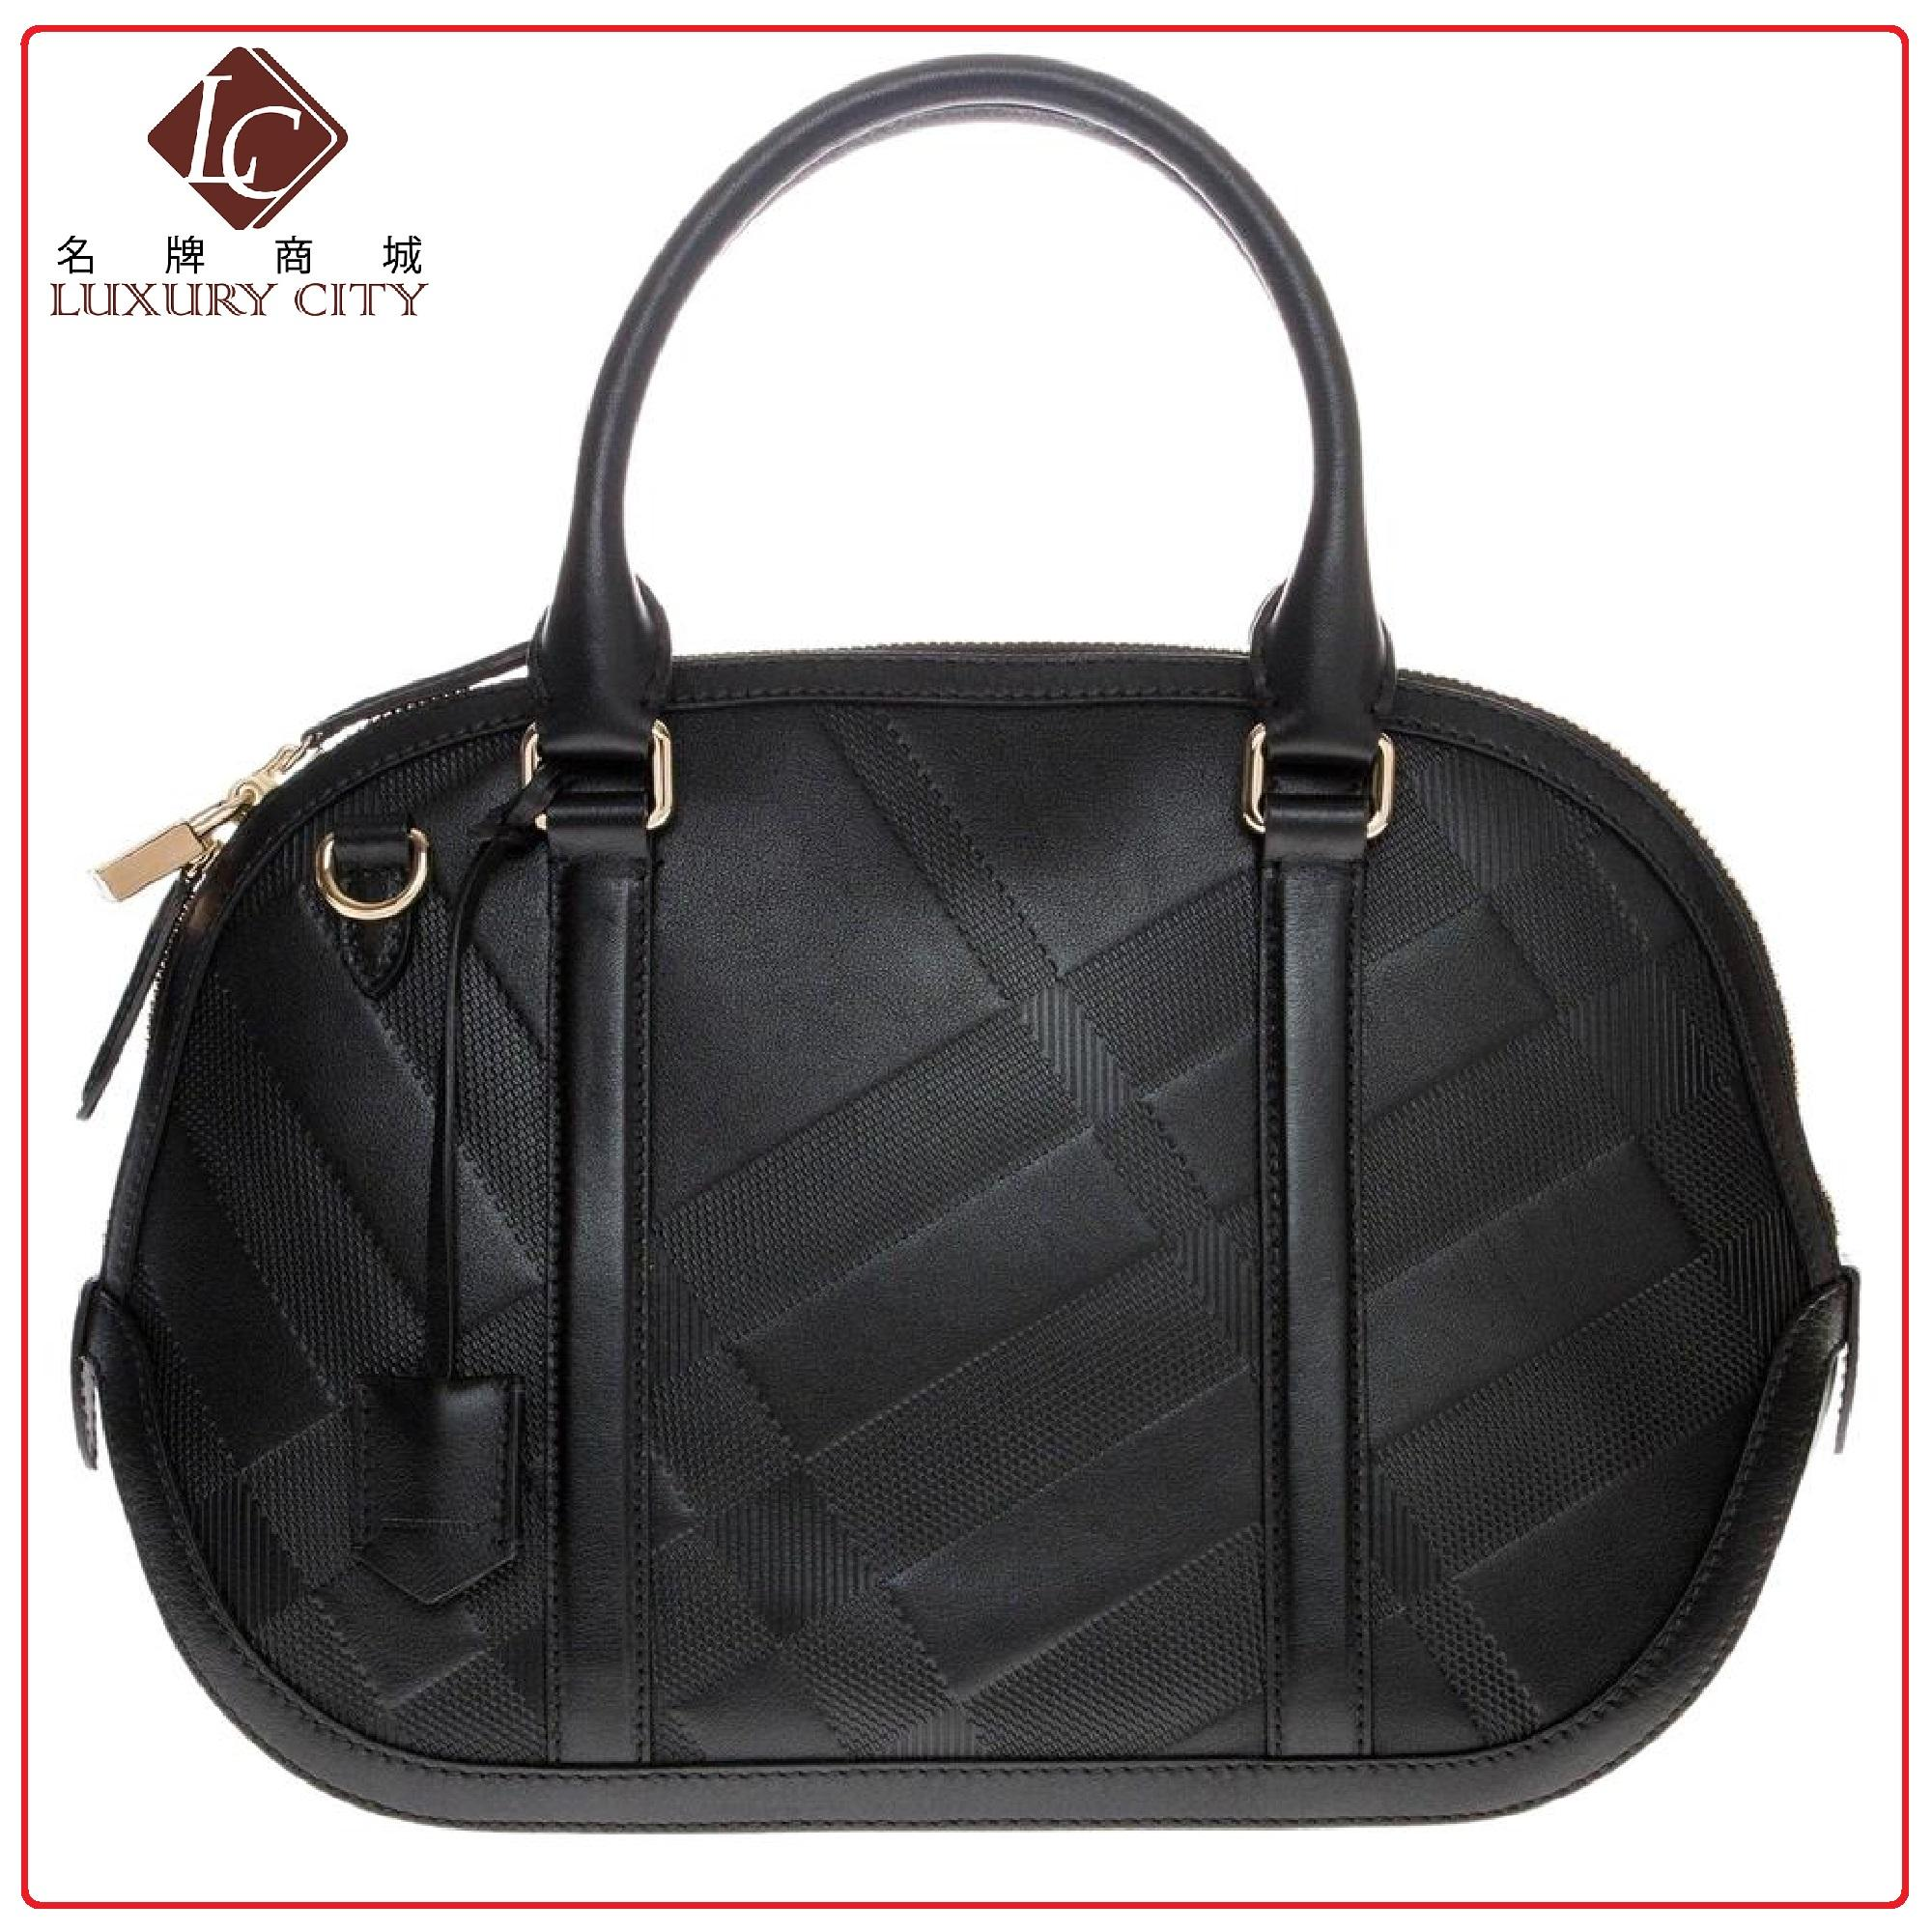 c1f5f1f41a43 BURBERRY Women s Small Soft Check Orchard Handbag 3949802 (Black )